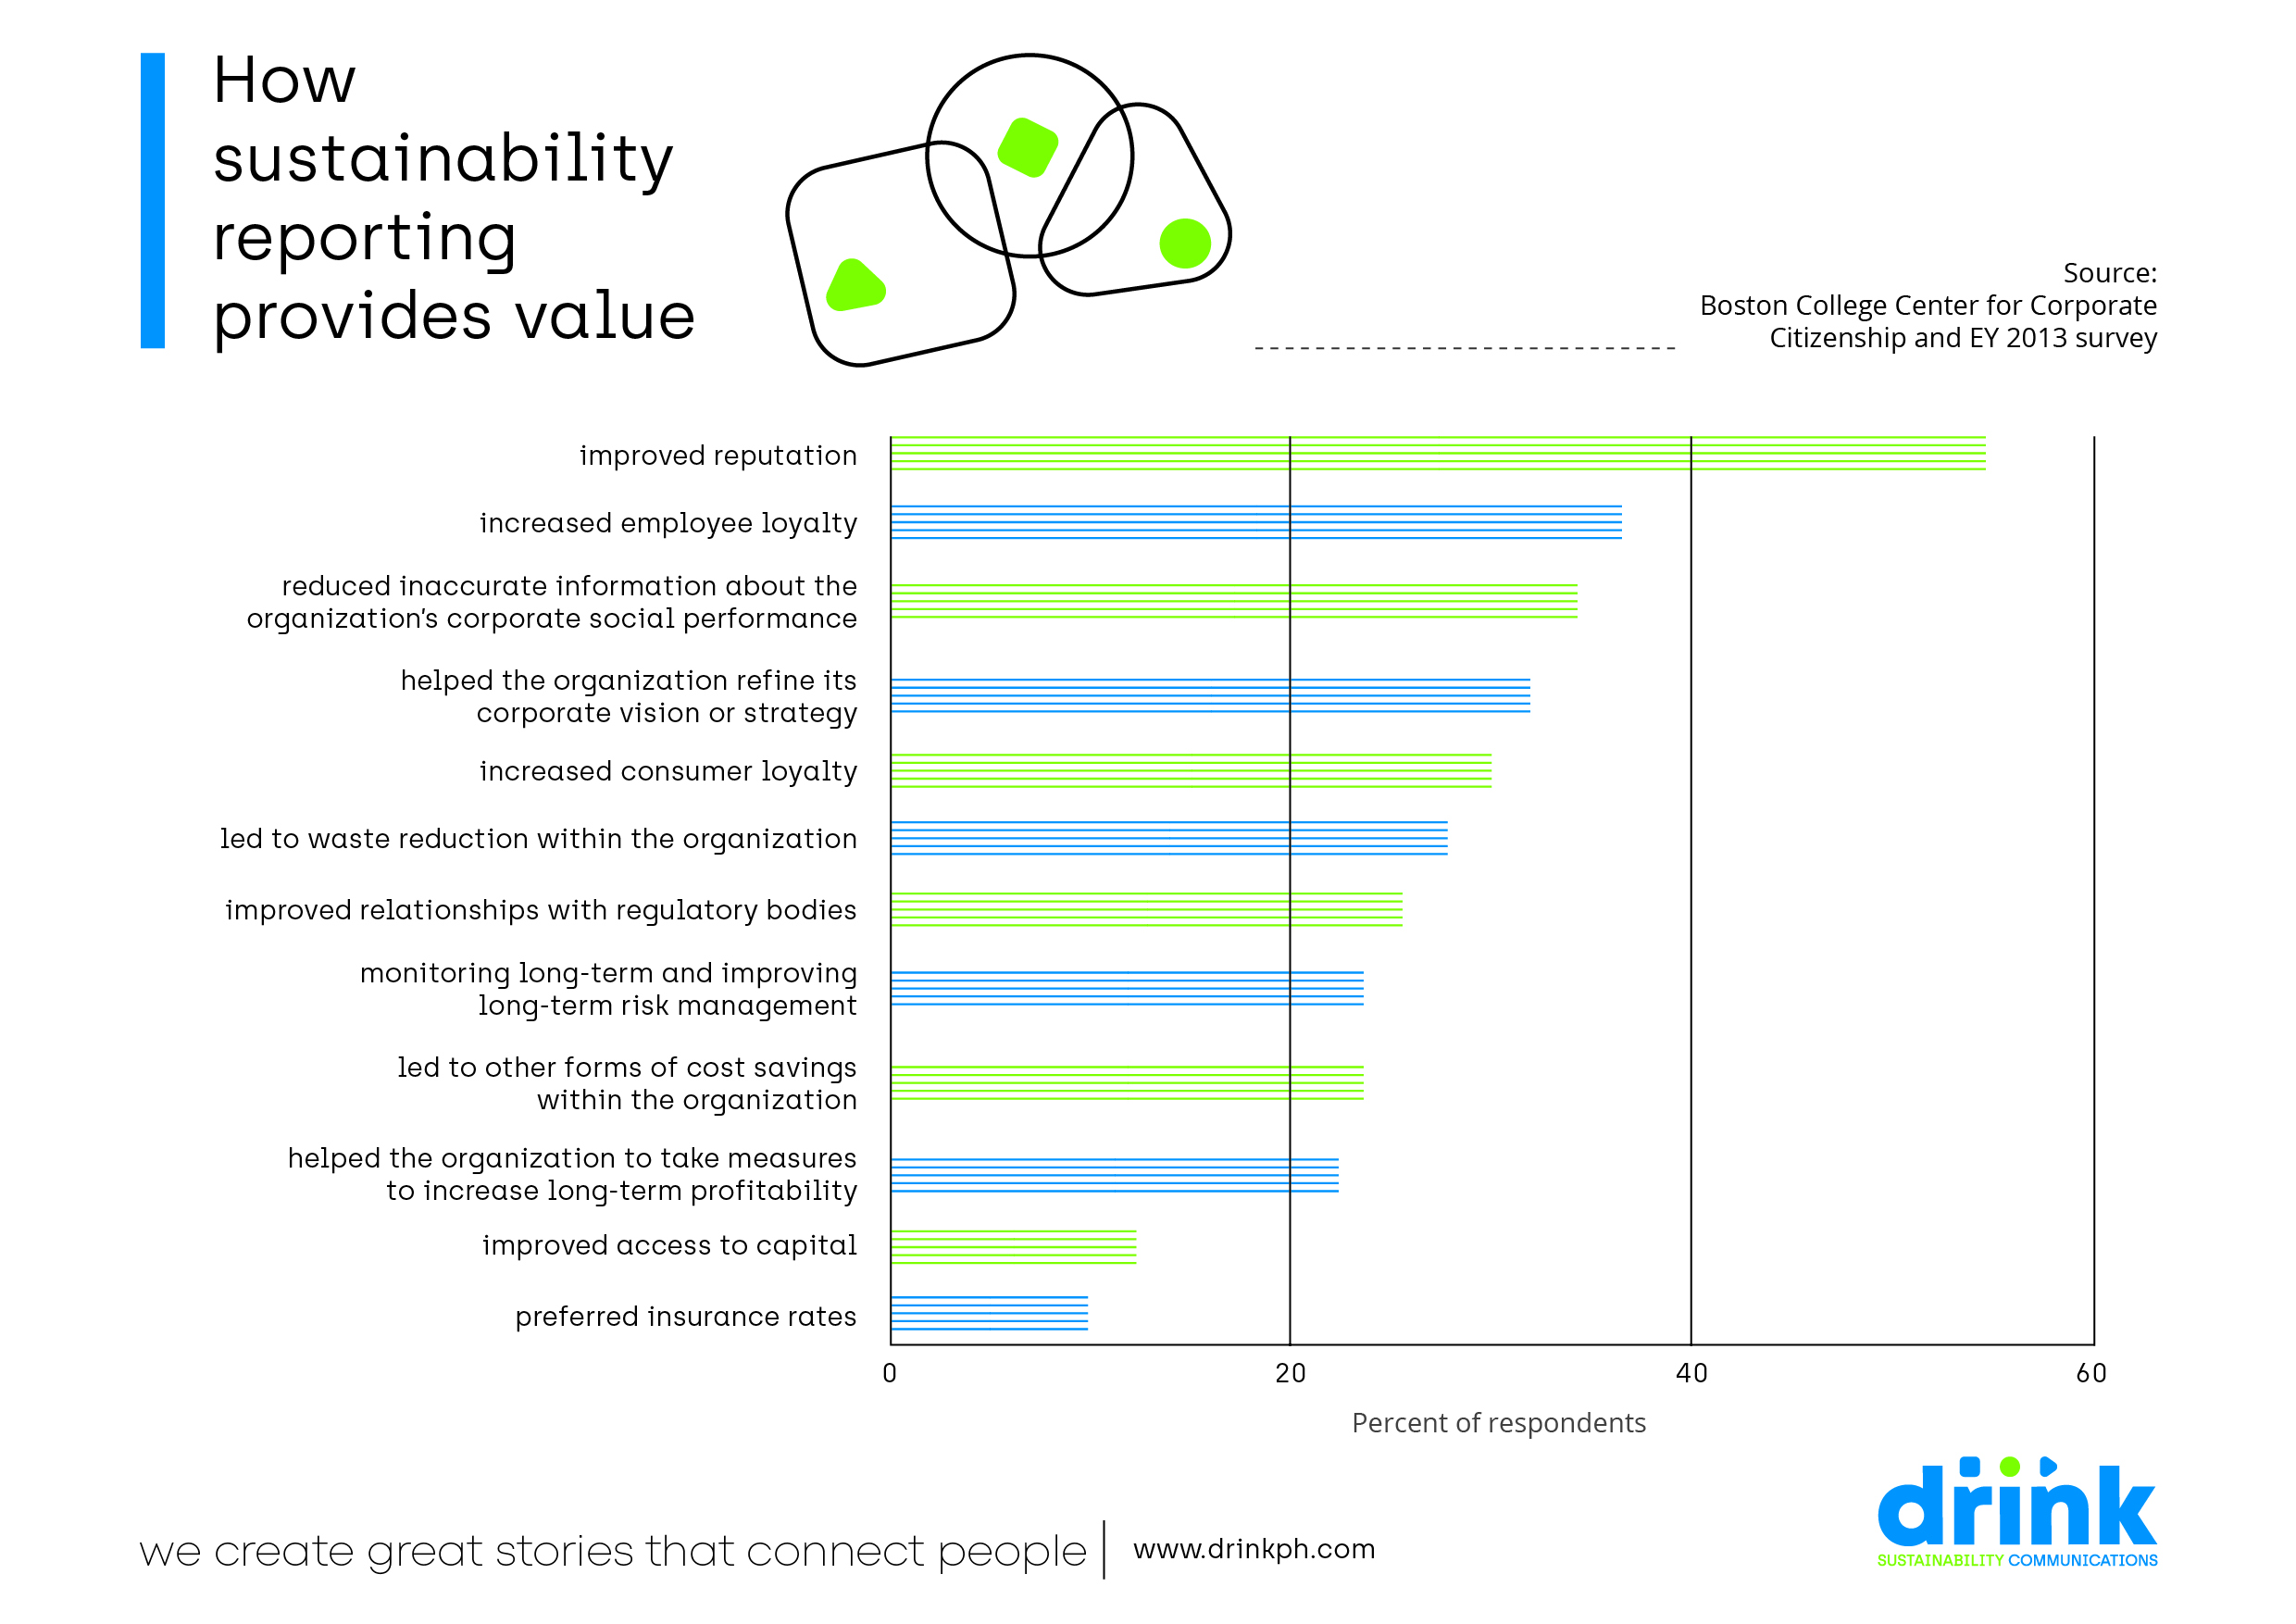 Drink Asian Dragon Infographic Sustainability Reporting Value